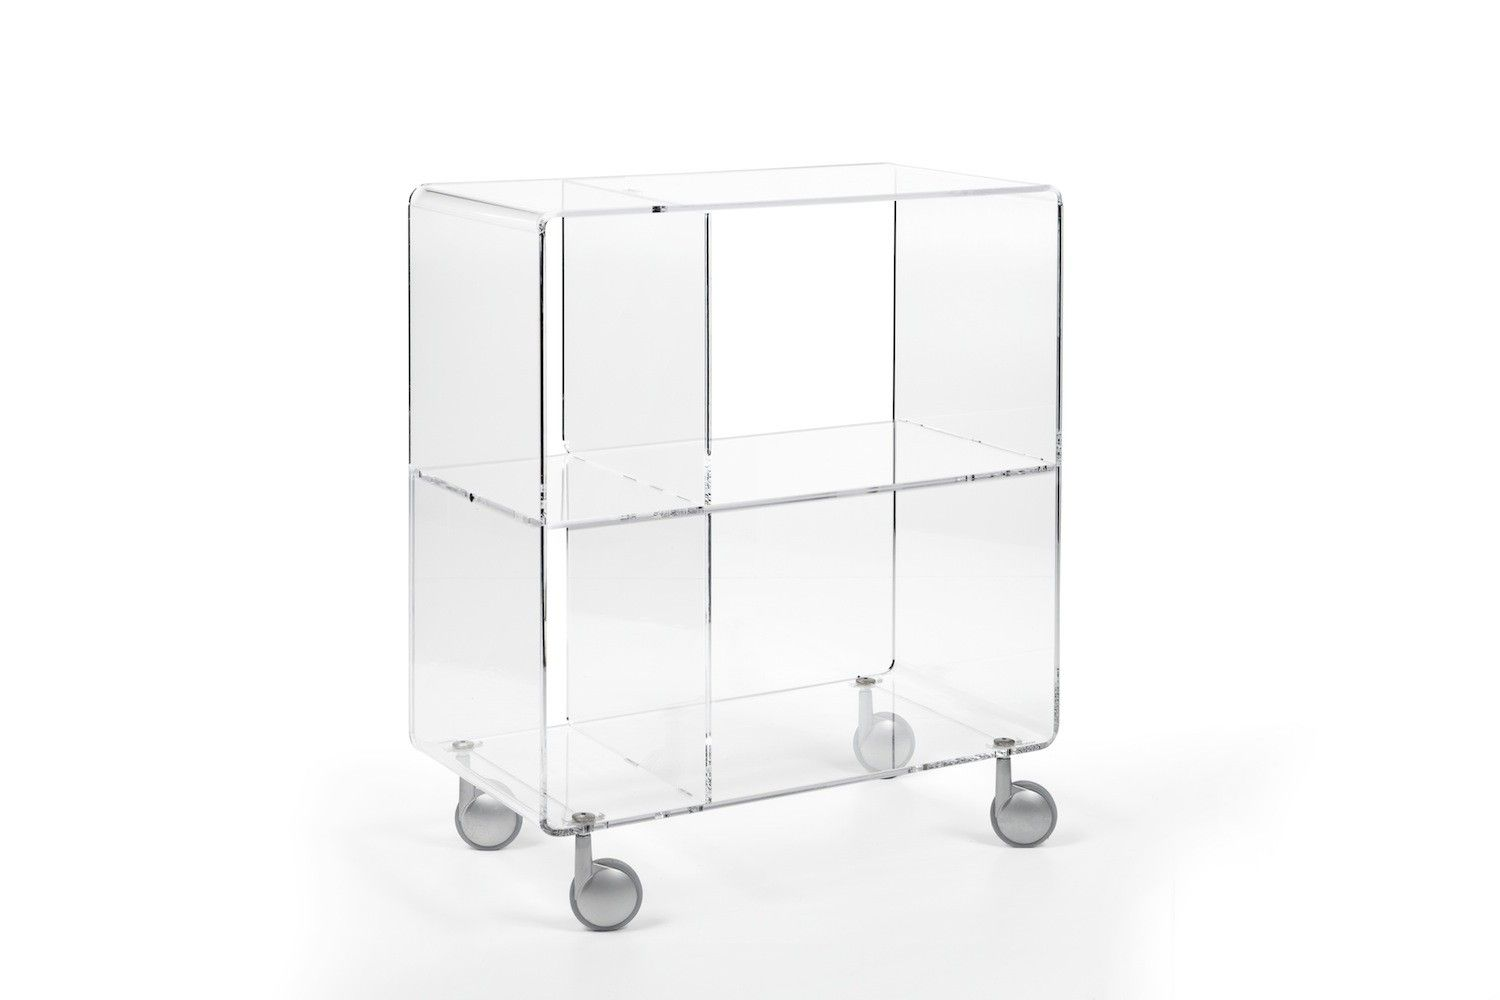 Porta Tv Plexiglass.Carrello Porta Tv In Plexiglass Trasparente Andy 5